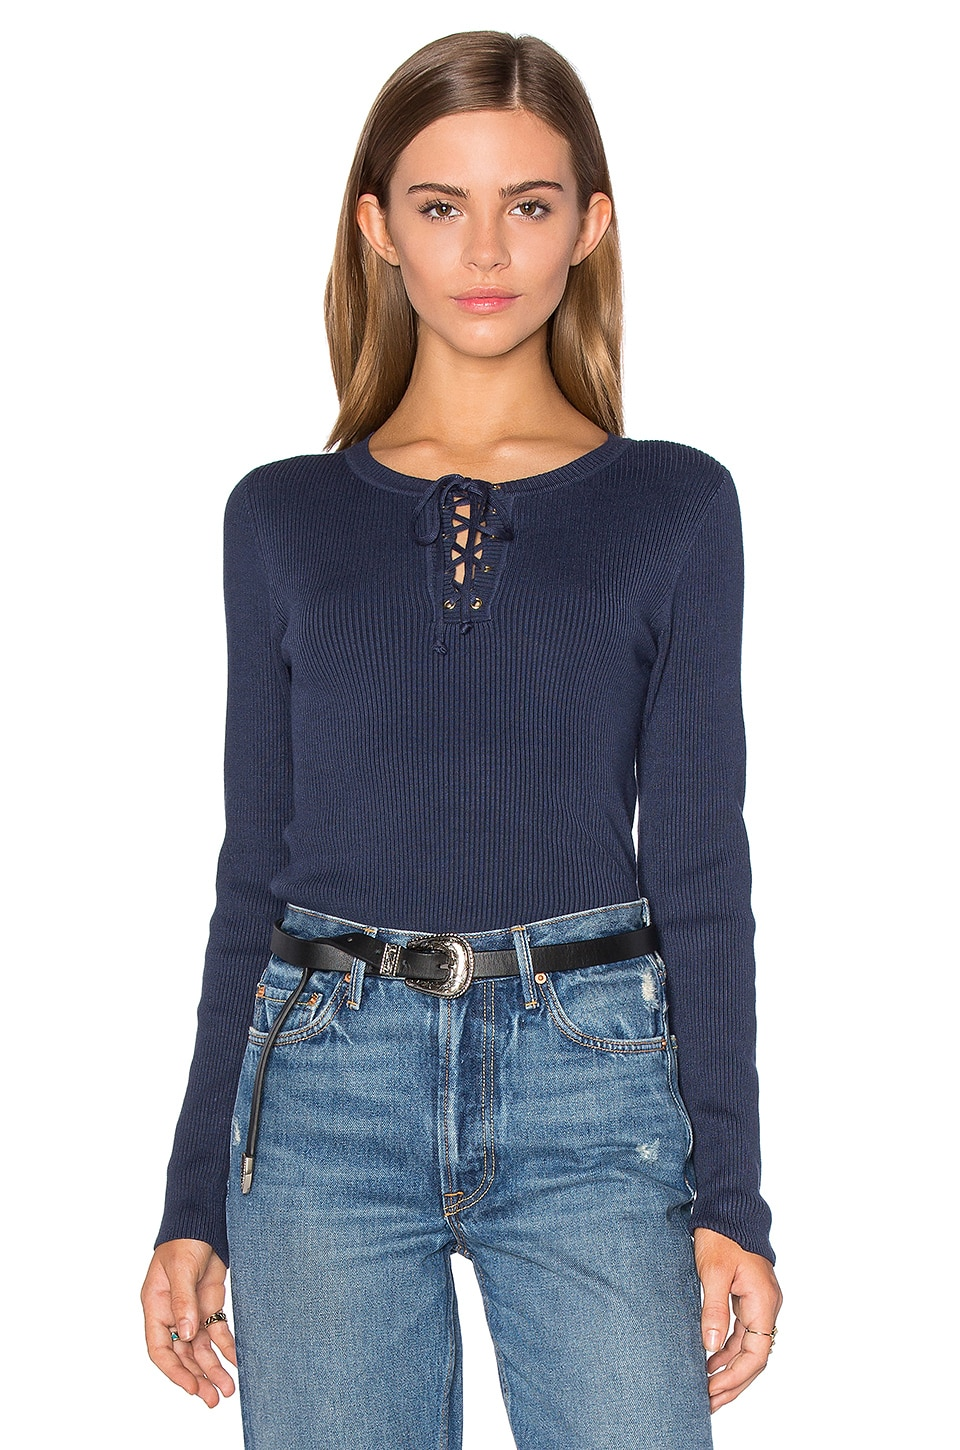 525 america Lace Up Sweater in Shadow Blue